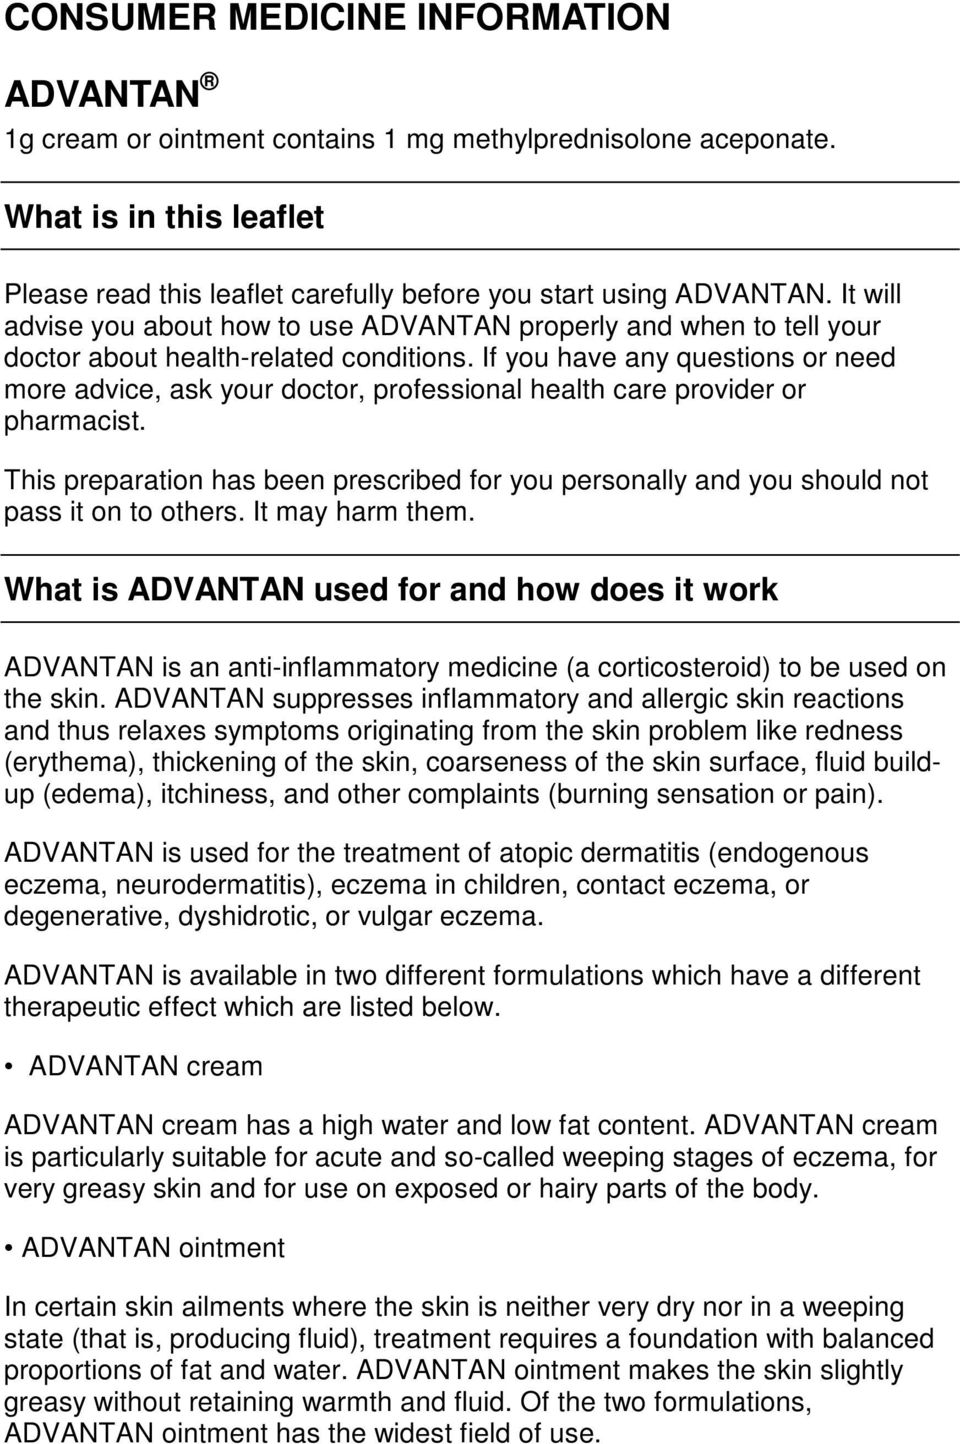 Advantan, ointment: instructions for use, indications, reviews